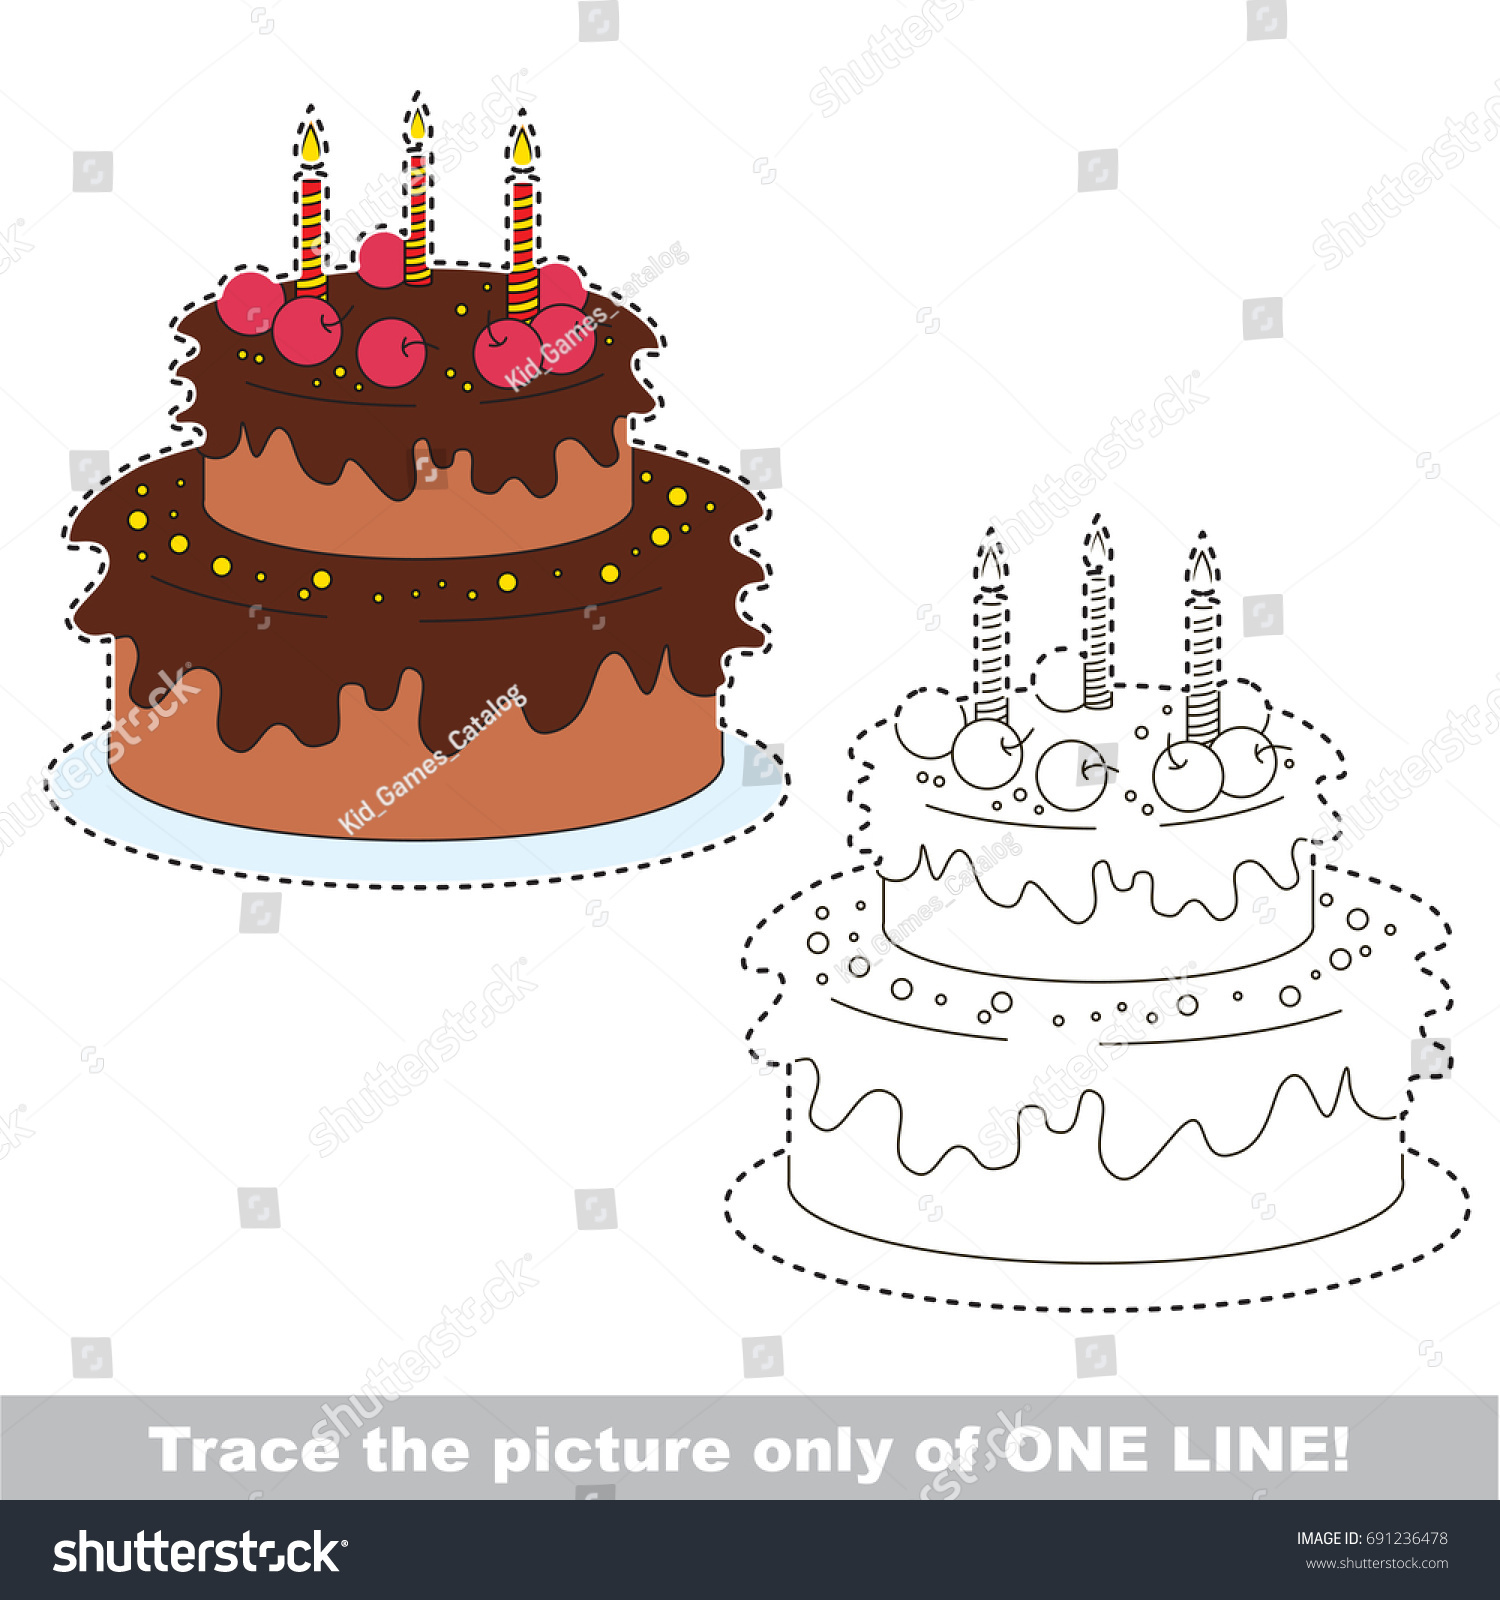 Sweet Cake Be Traced Only One Stock Vector